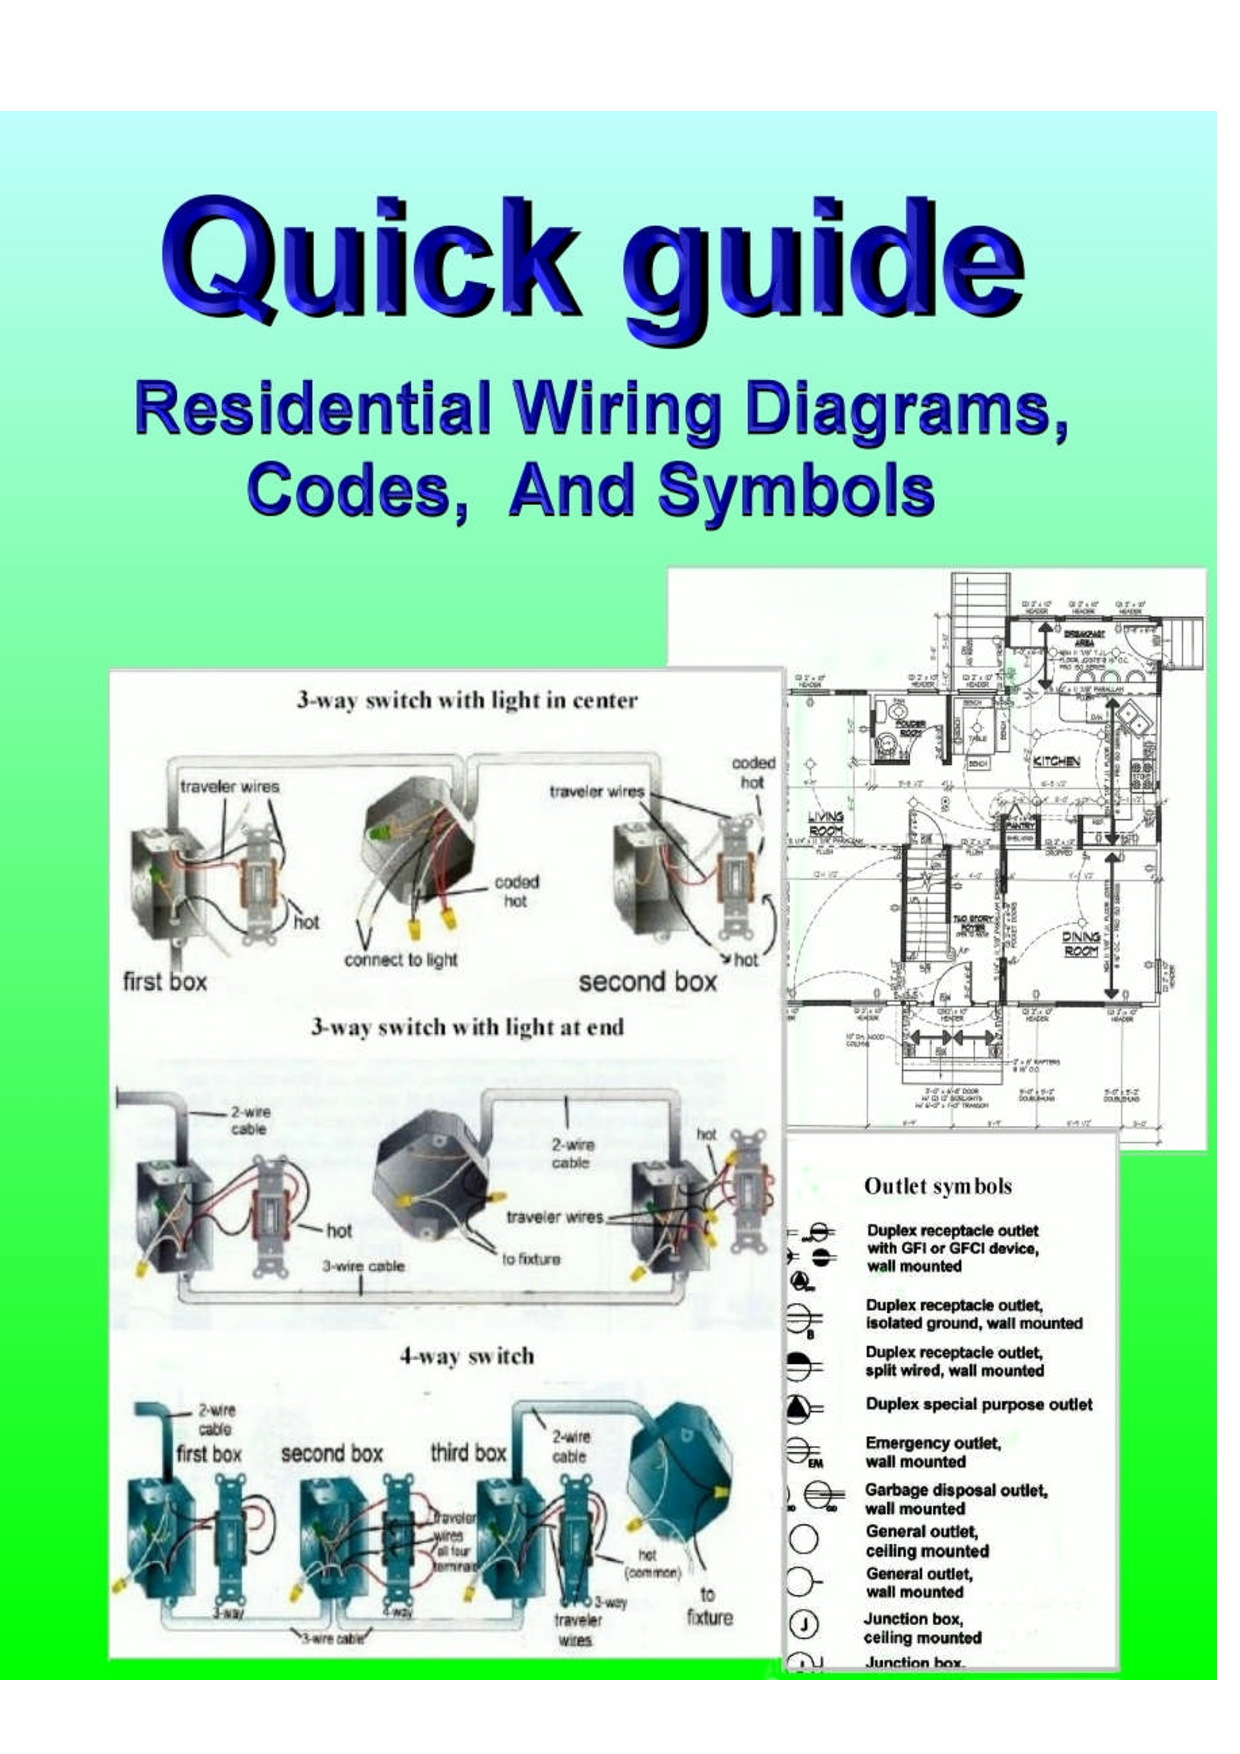 Peachy Residential Electric Wiring Diagrams Wiring Diagram Wiring 101 Olytiaxxcnl